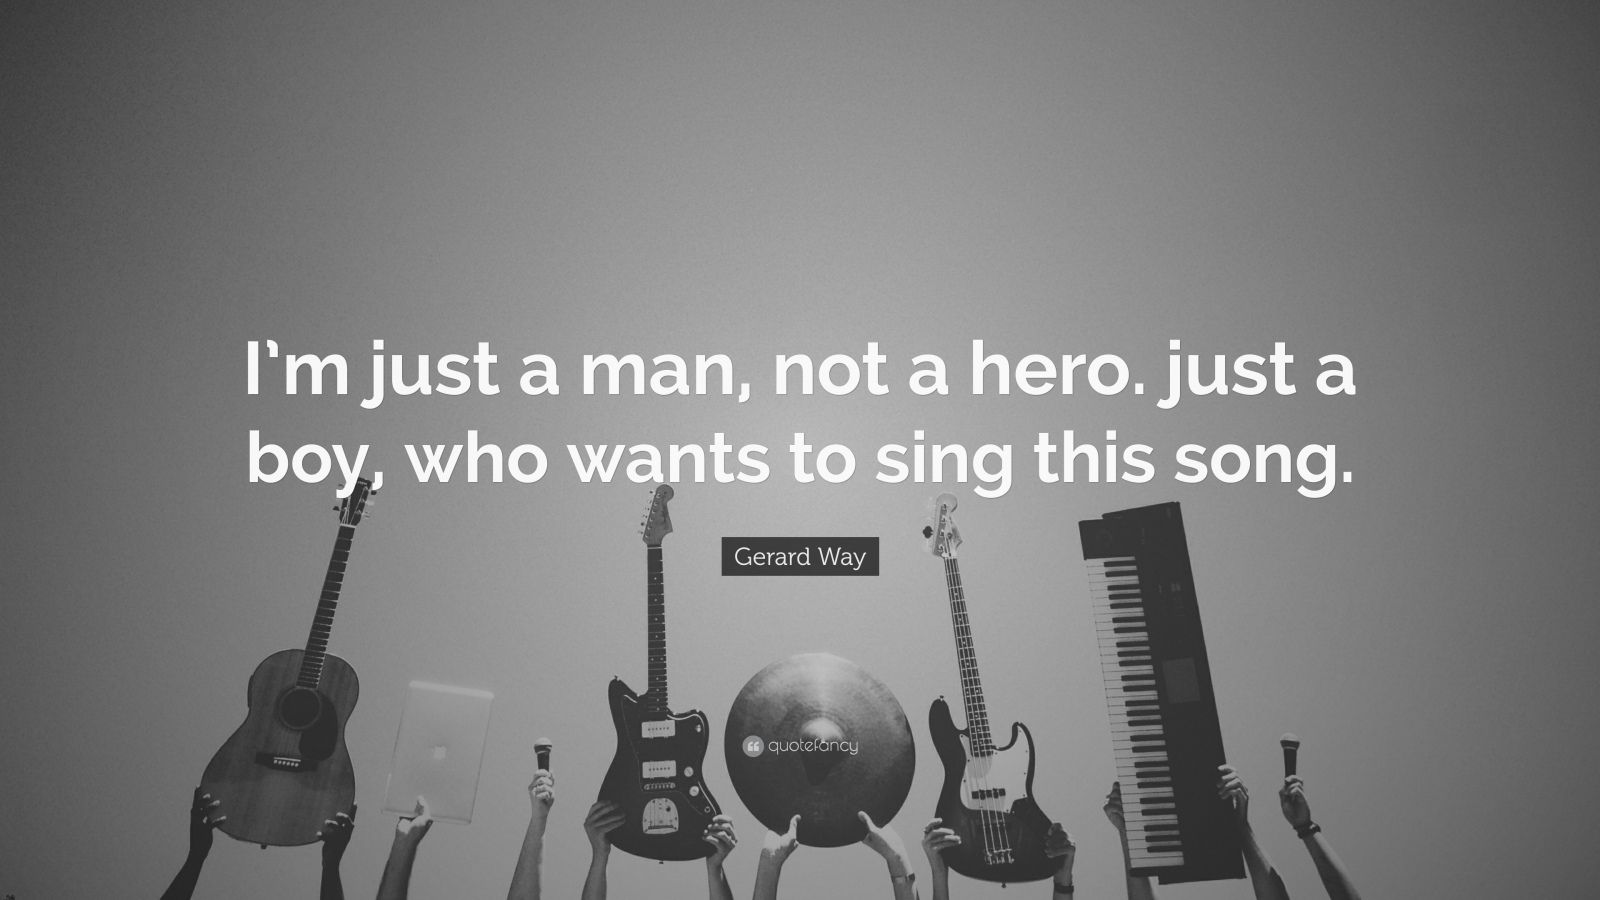 """Gerard Way Quote: """"I'm just a man, not a hero. just a boy, who wants to sing this song."""""""